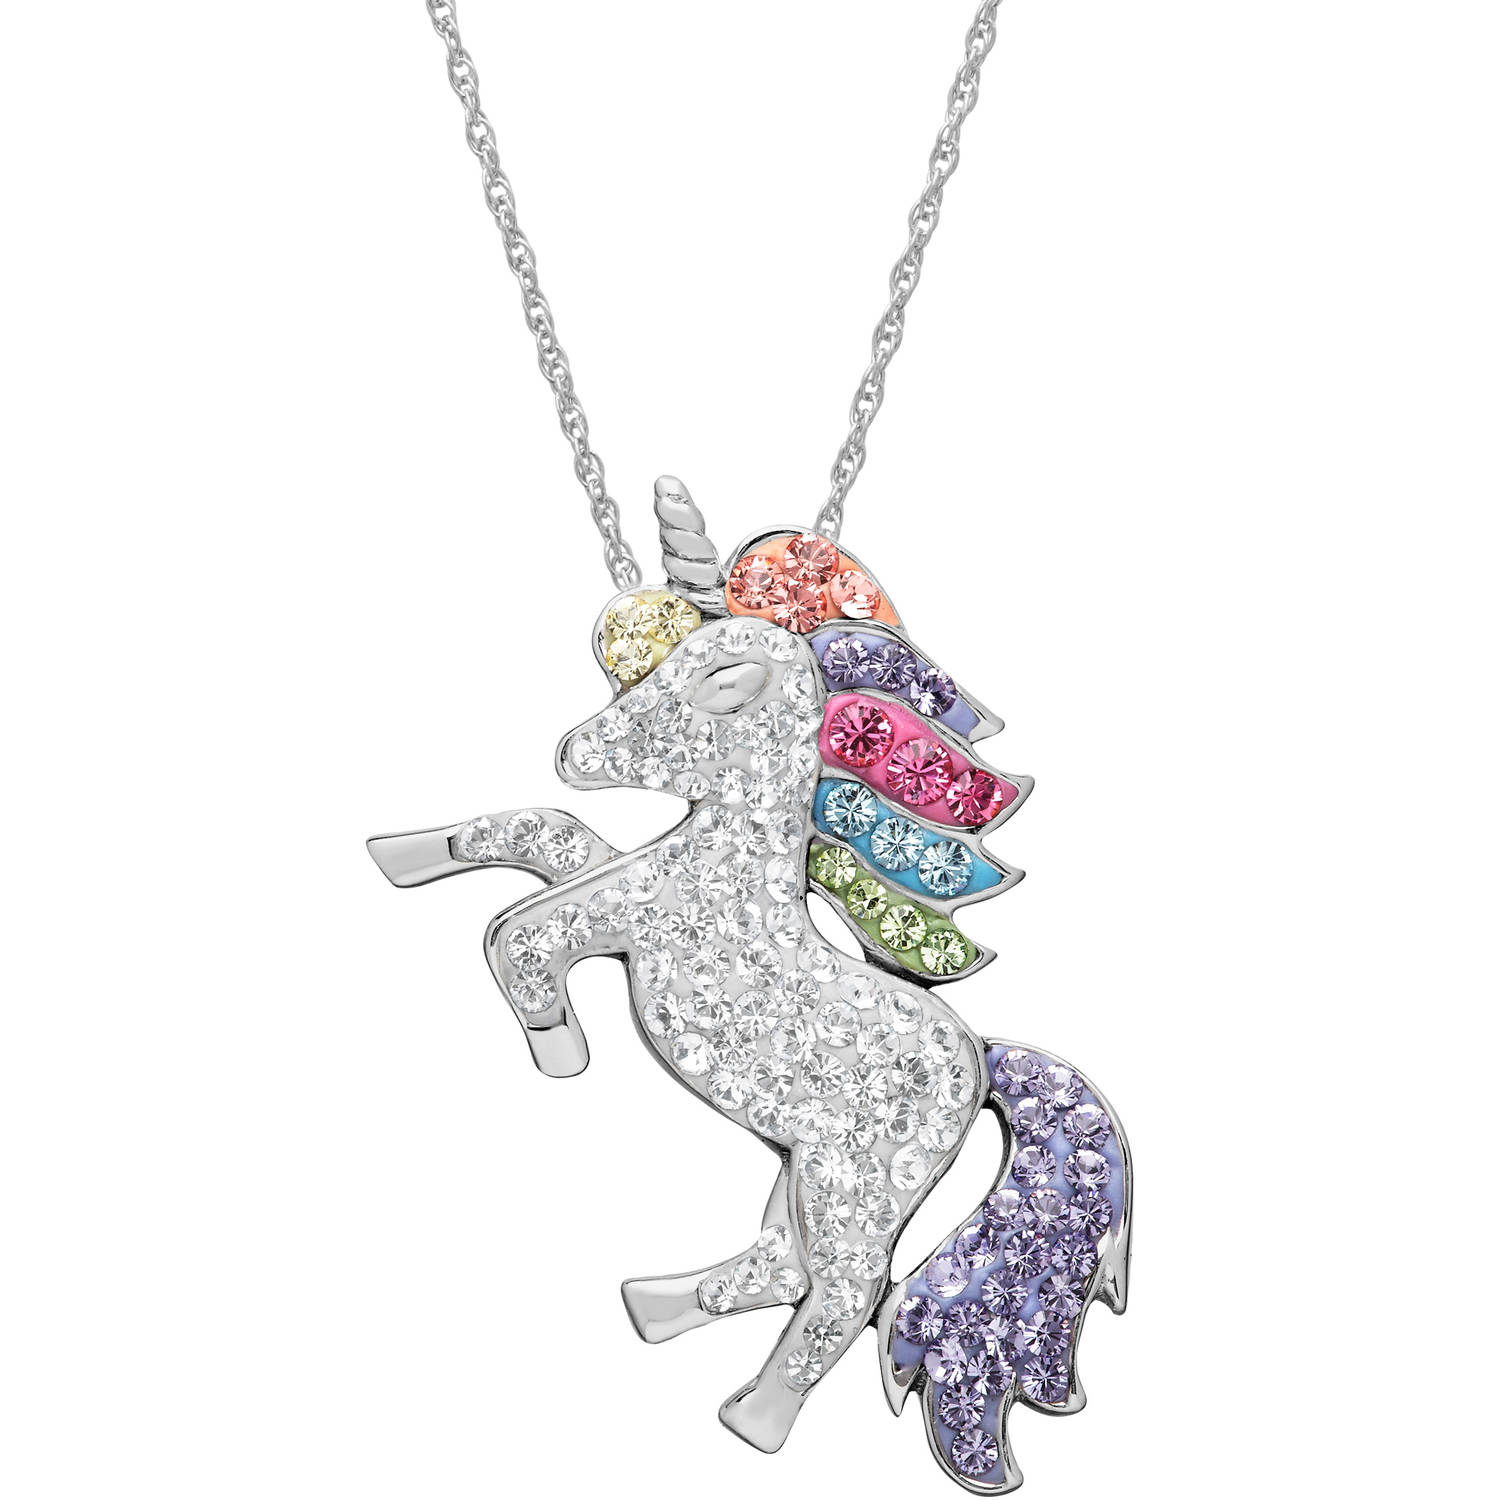 Luminesse Swarovski Element Sterling Silver Unicorn Pendant, 18